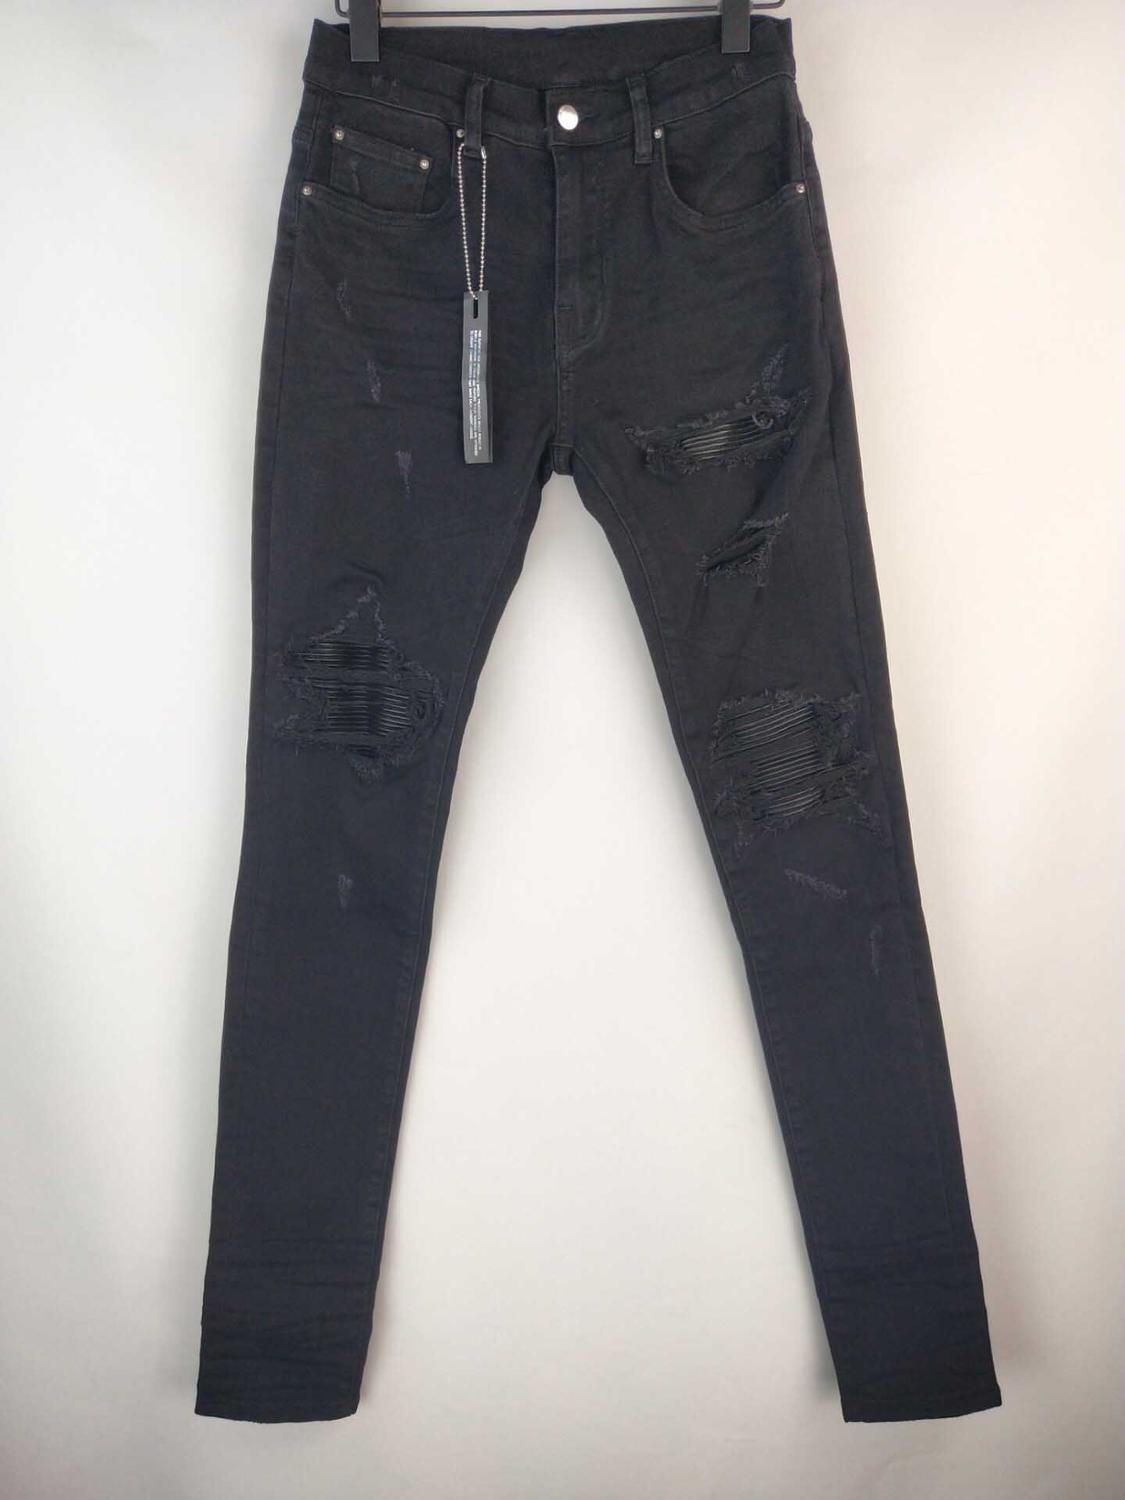 New Men MX1 Stretchy Skinny Ribbed Leather Patch Distressed Black Jeans